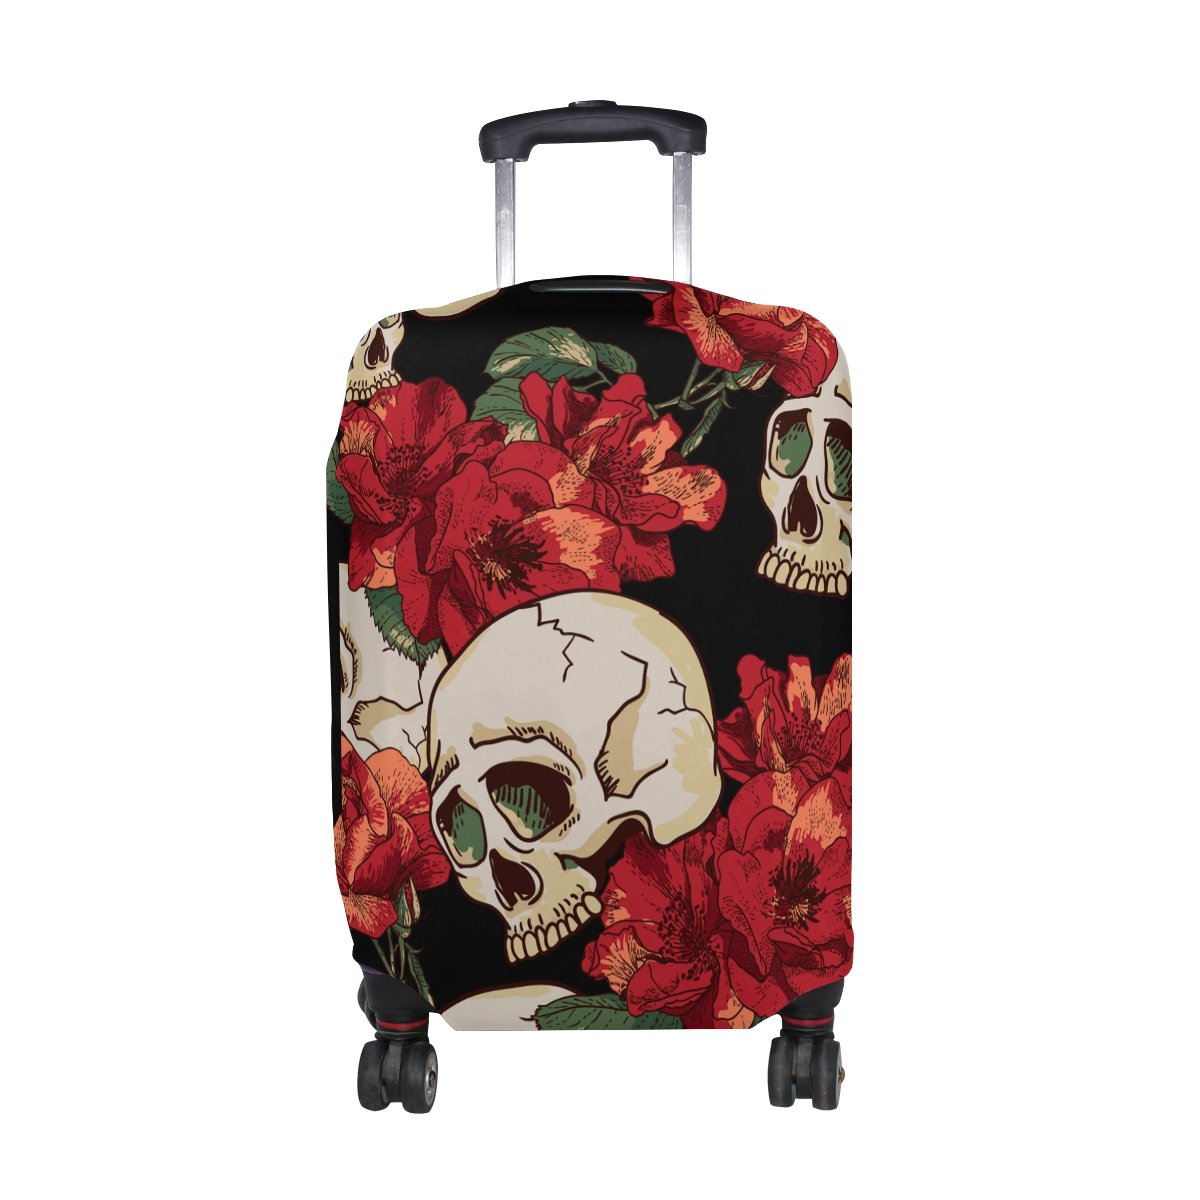 Sugar Skull Dia De Los Muertos Travel Luggage Protector Baggage Suitcase Cover Fits 18-21 Inch Luggage